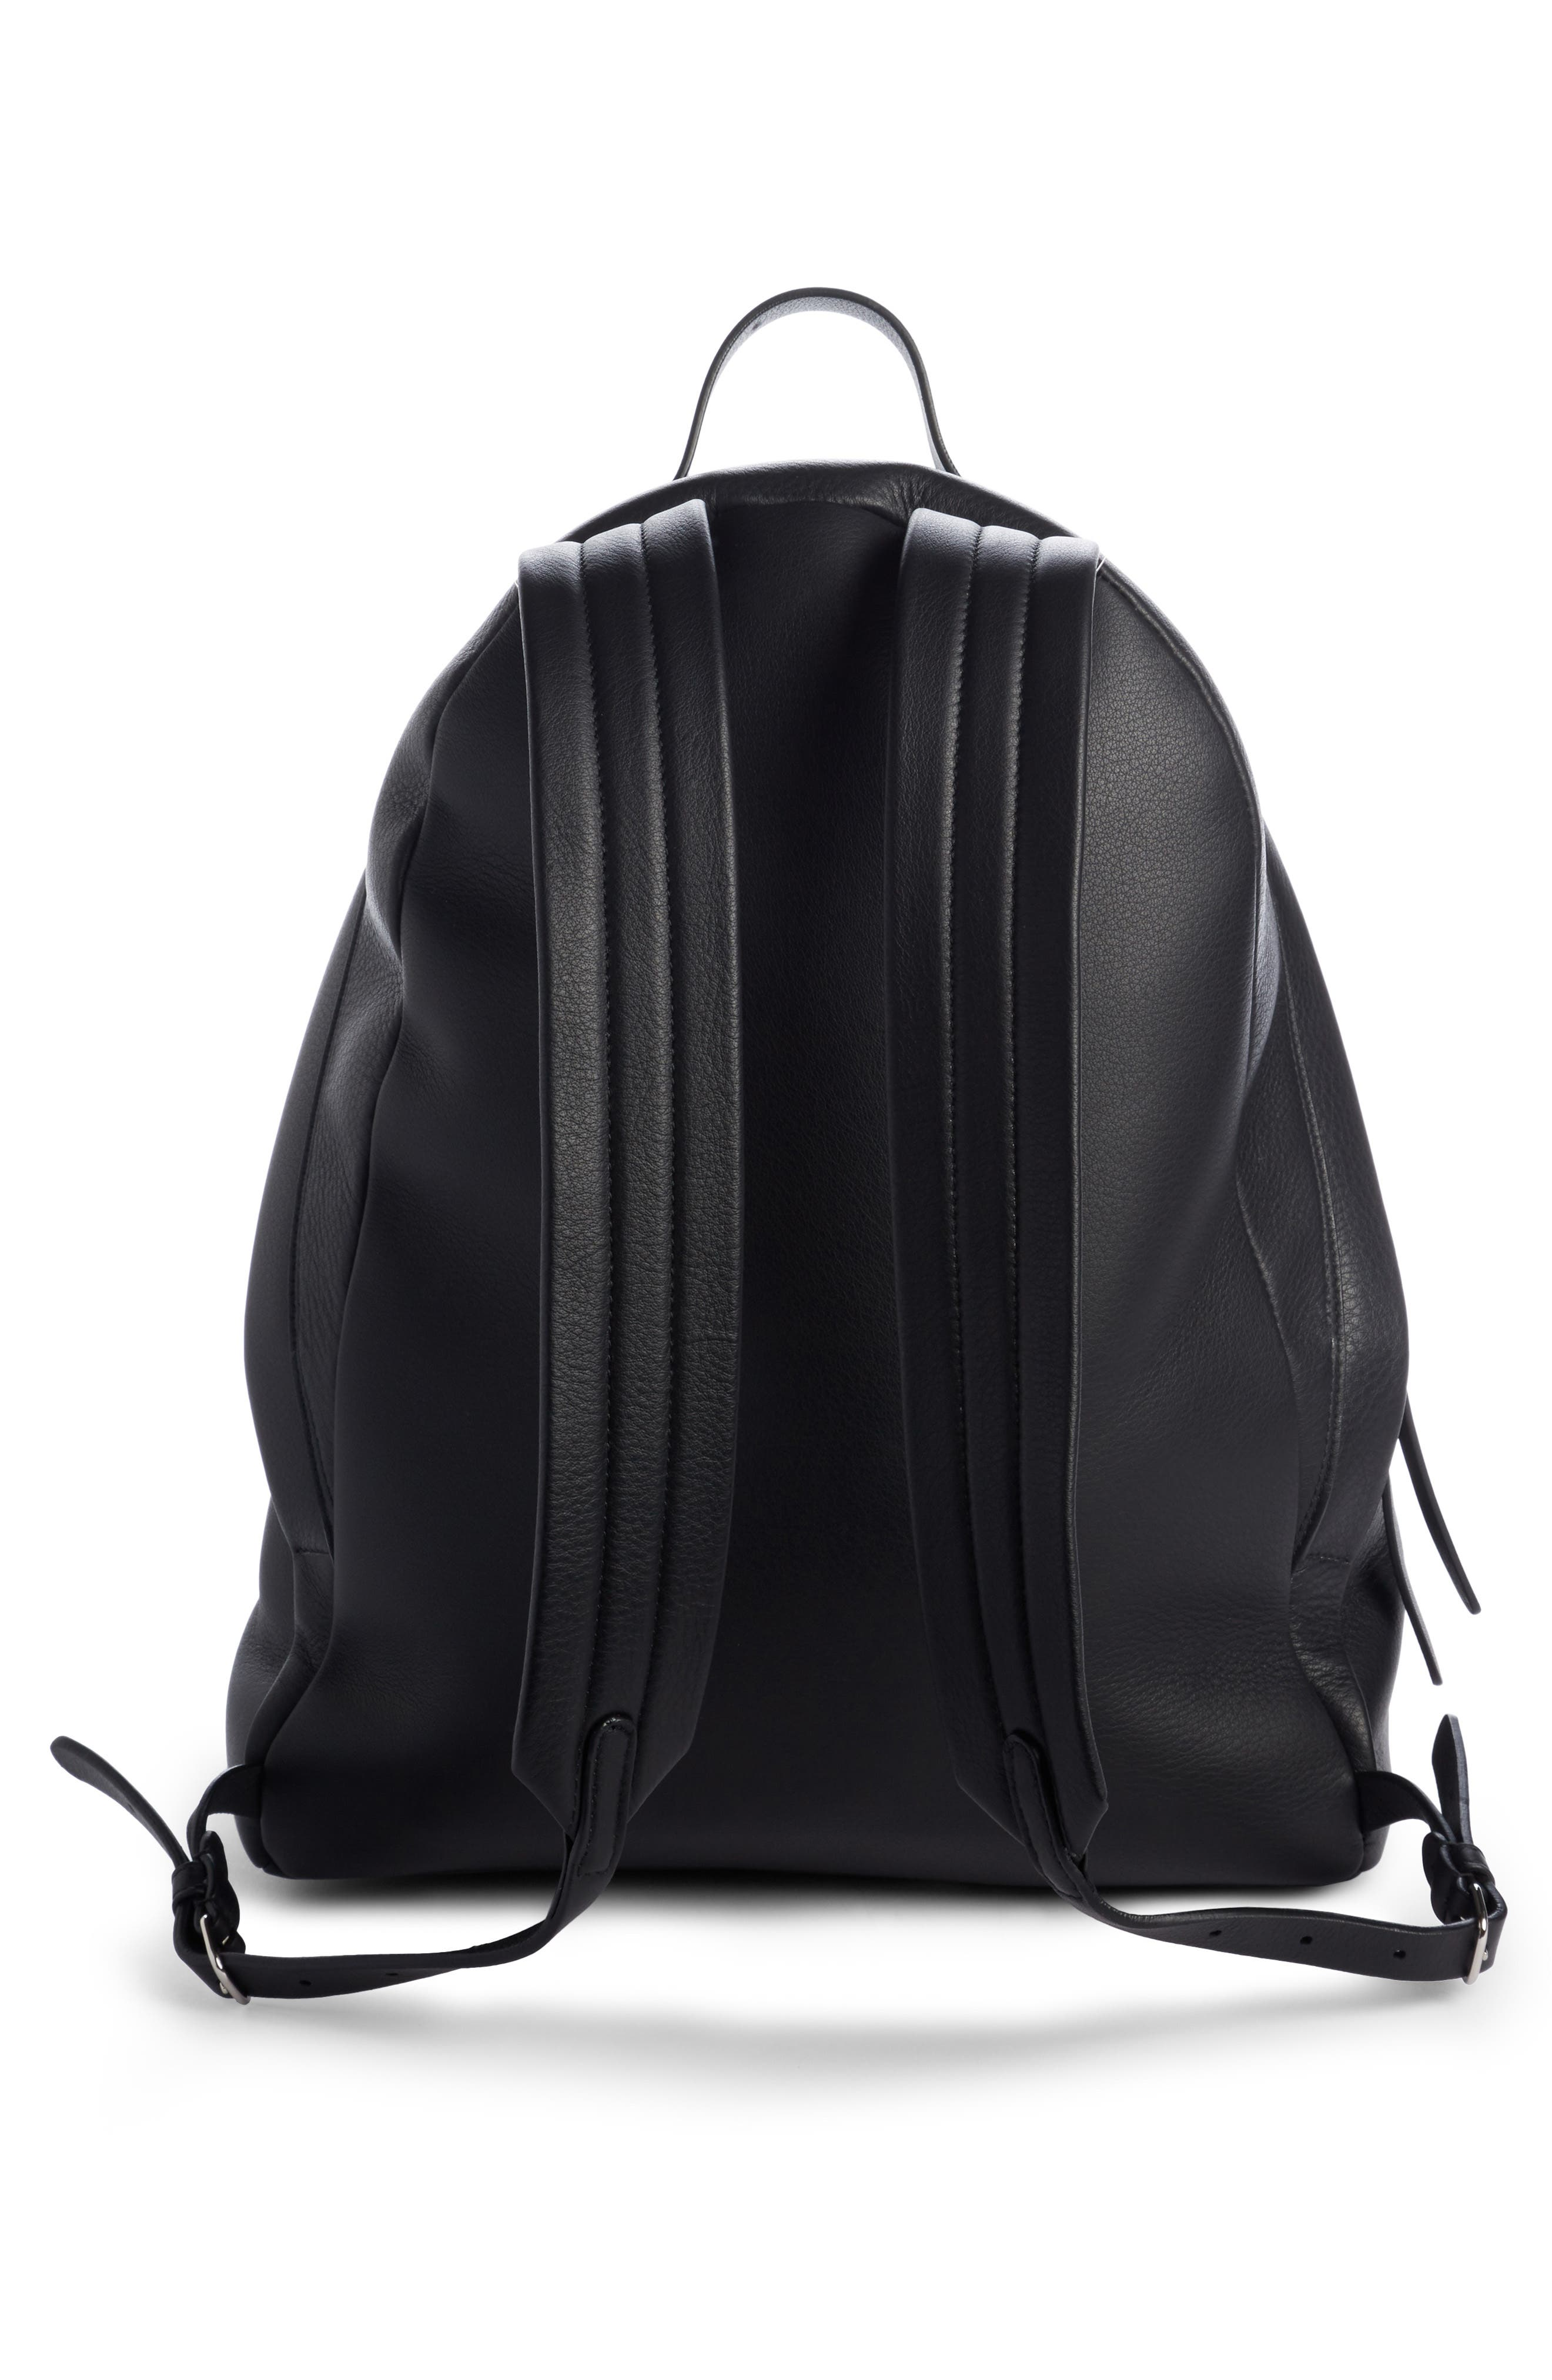 Everyday Calfskin Backpack,                             Alternate thumbnail 2, color,                             001